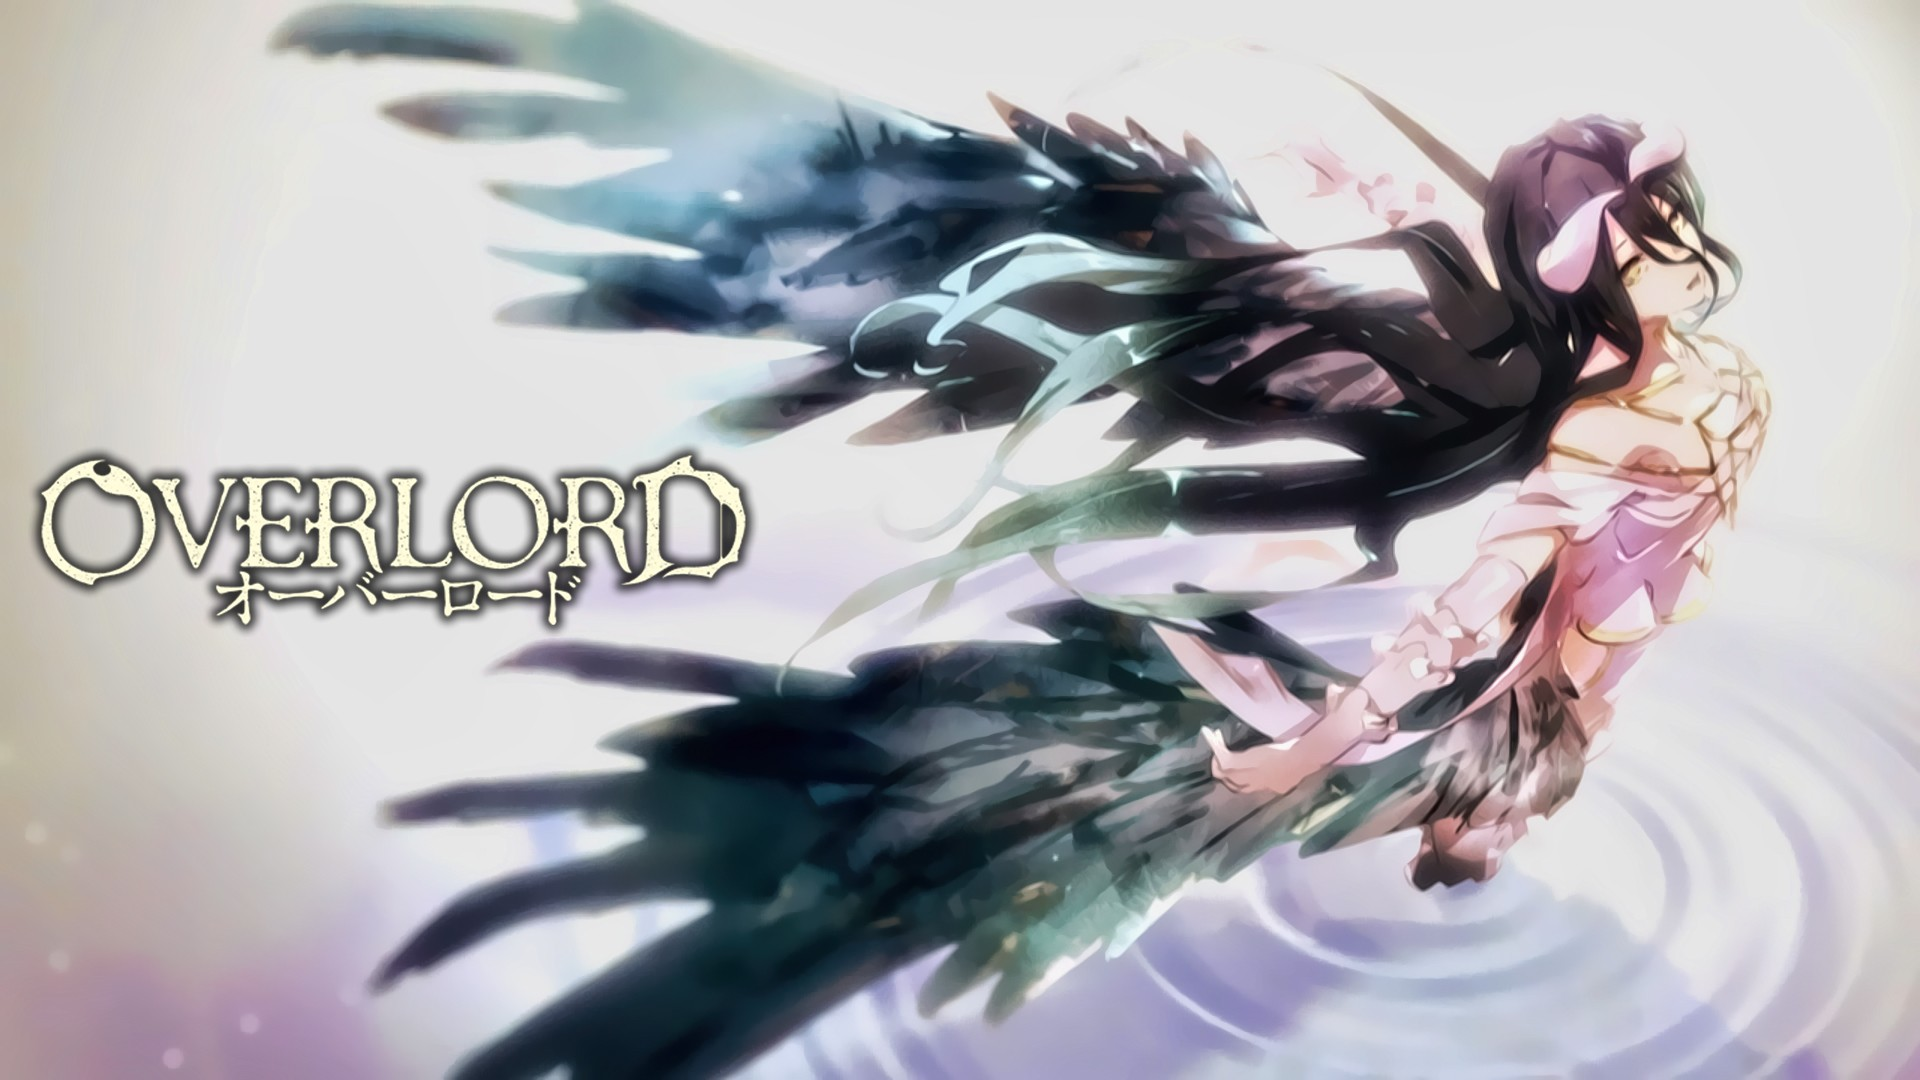 Overlord Wallpapers High Quality   Download Free